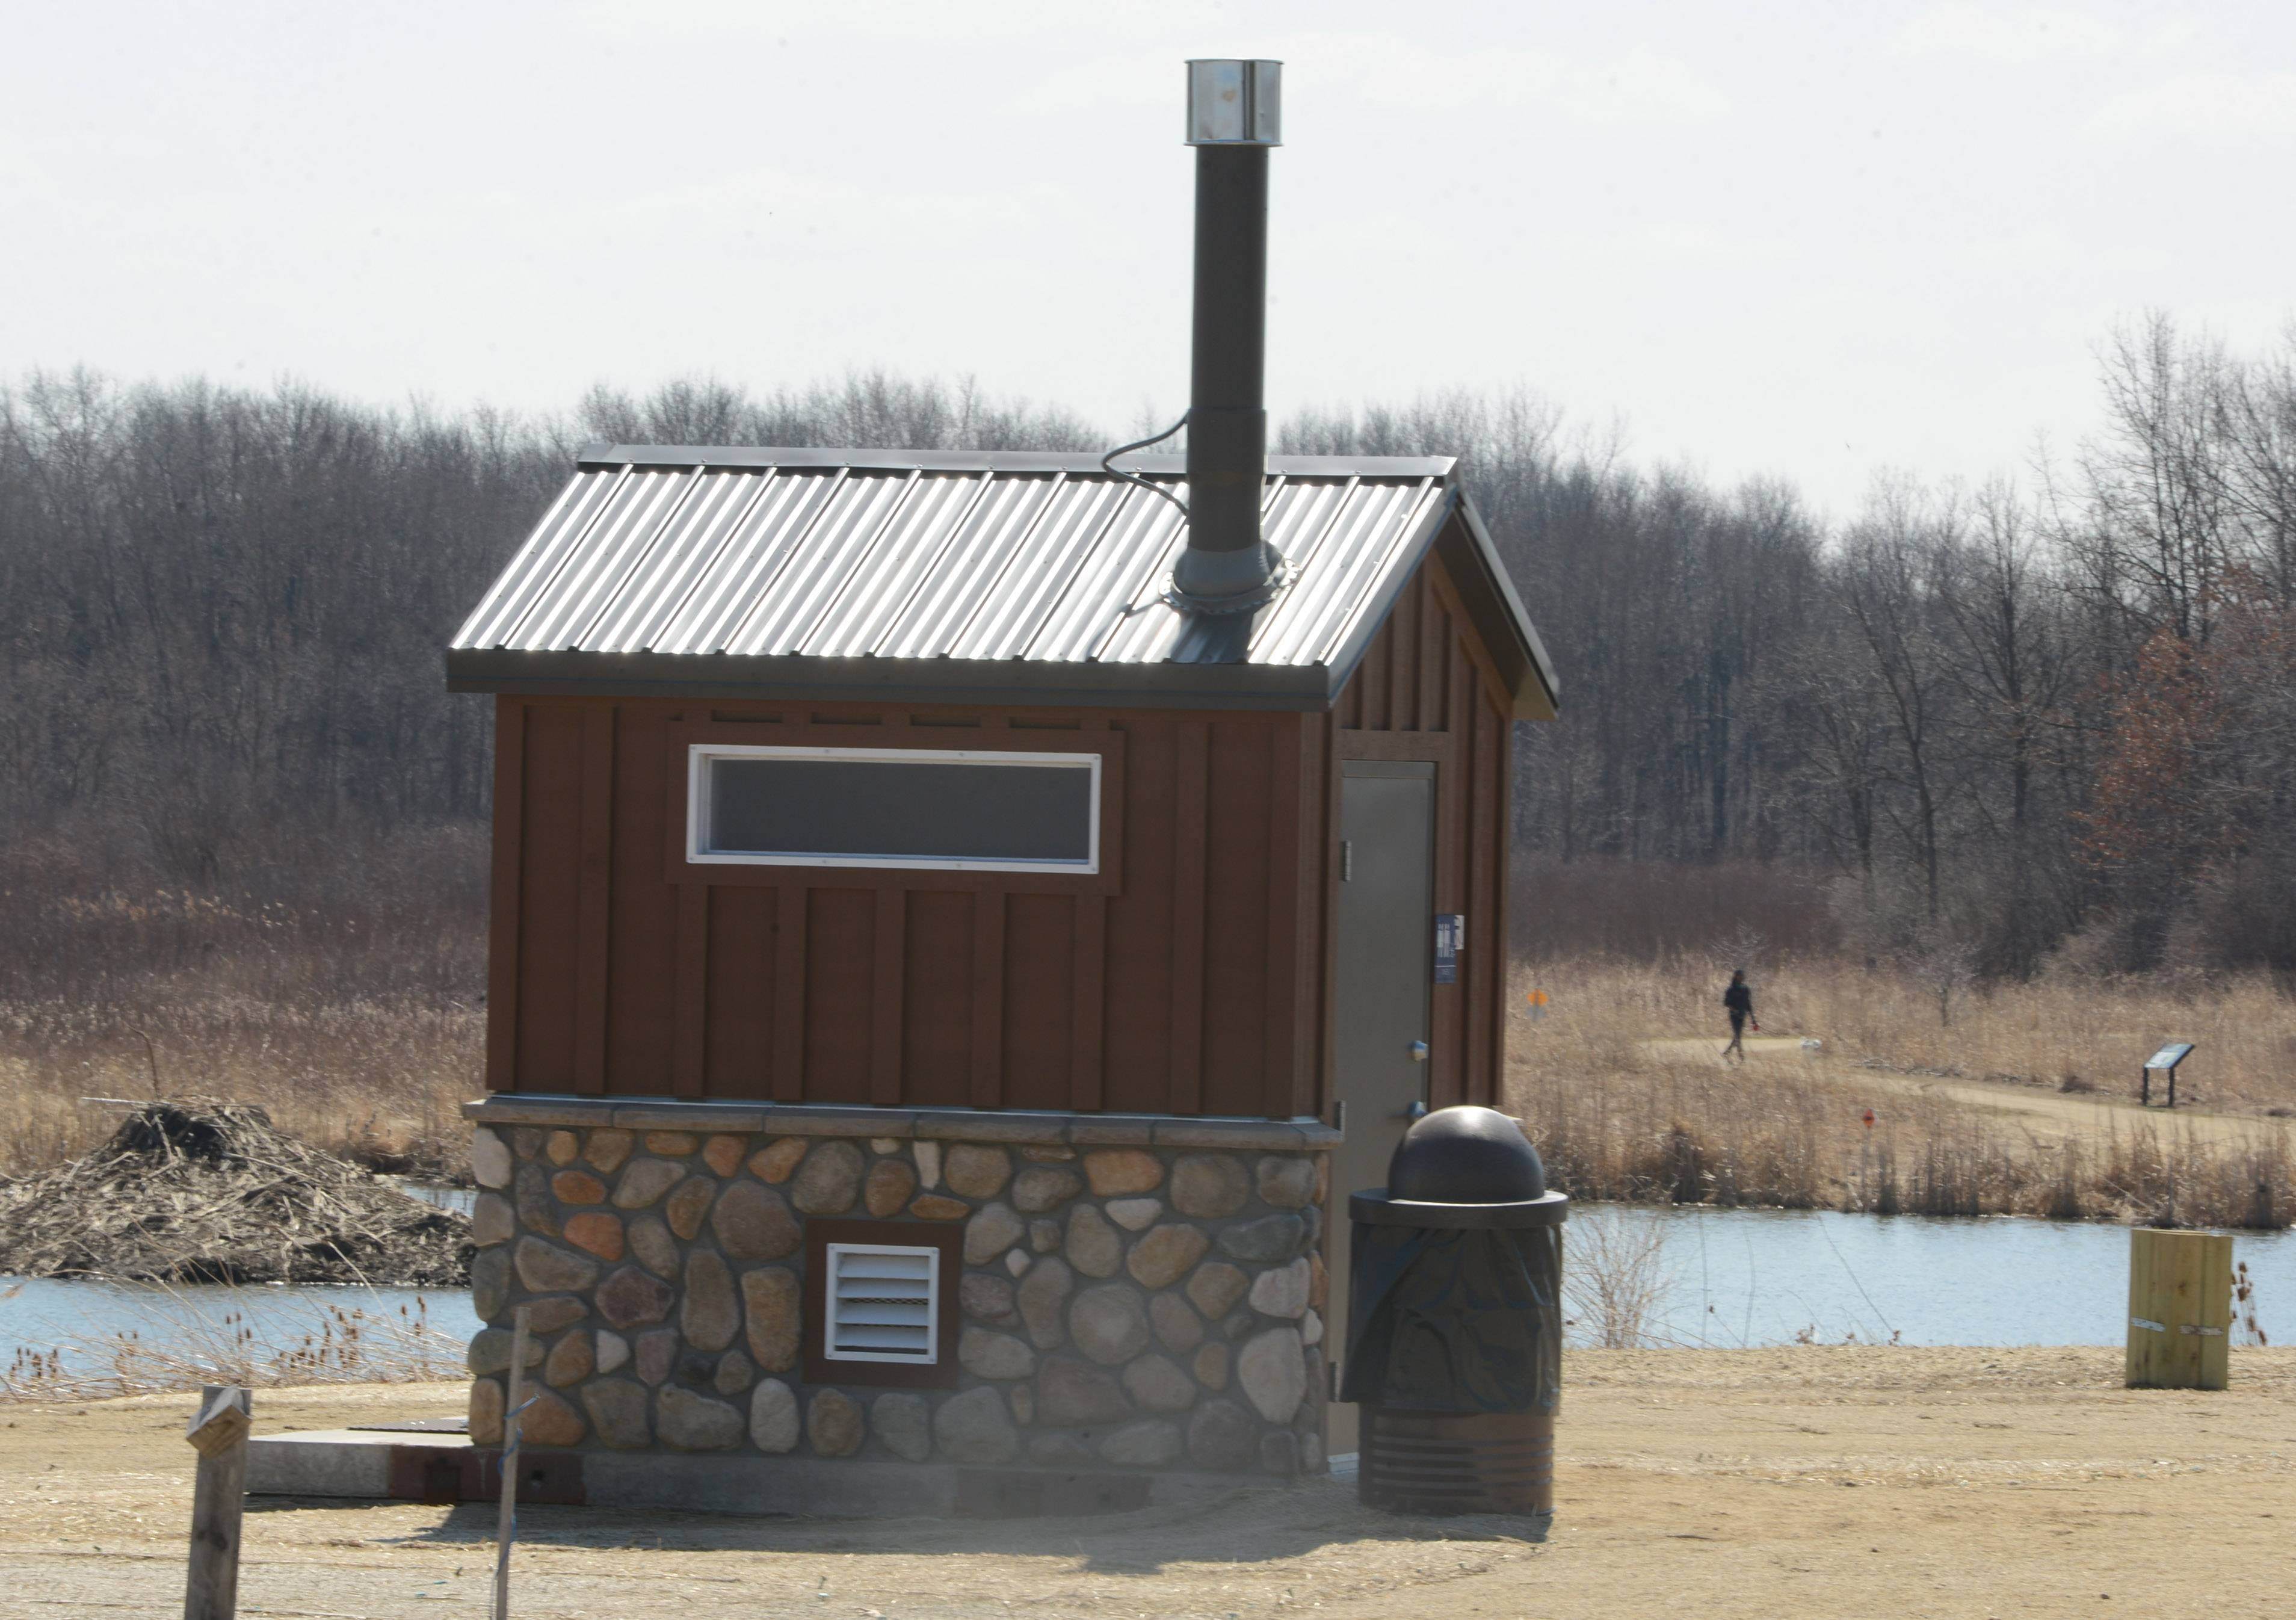 A new bathroom building installed at the Sedge Meadow Forest Preserve off Wadsworth Road features a patented technology designed to eliminate odors.